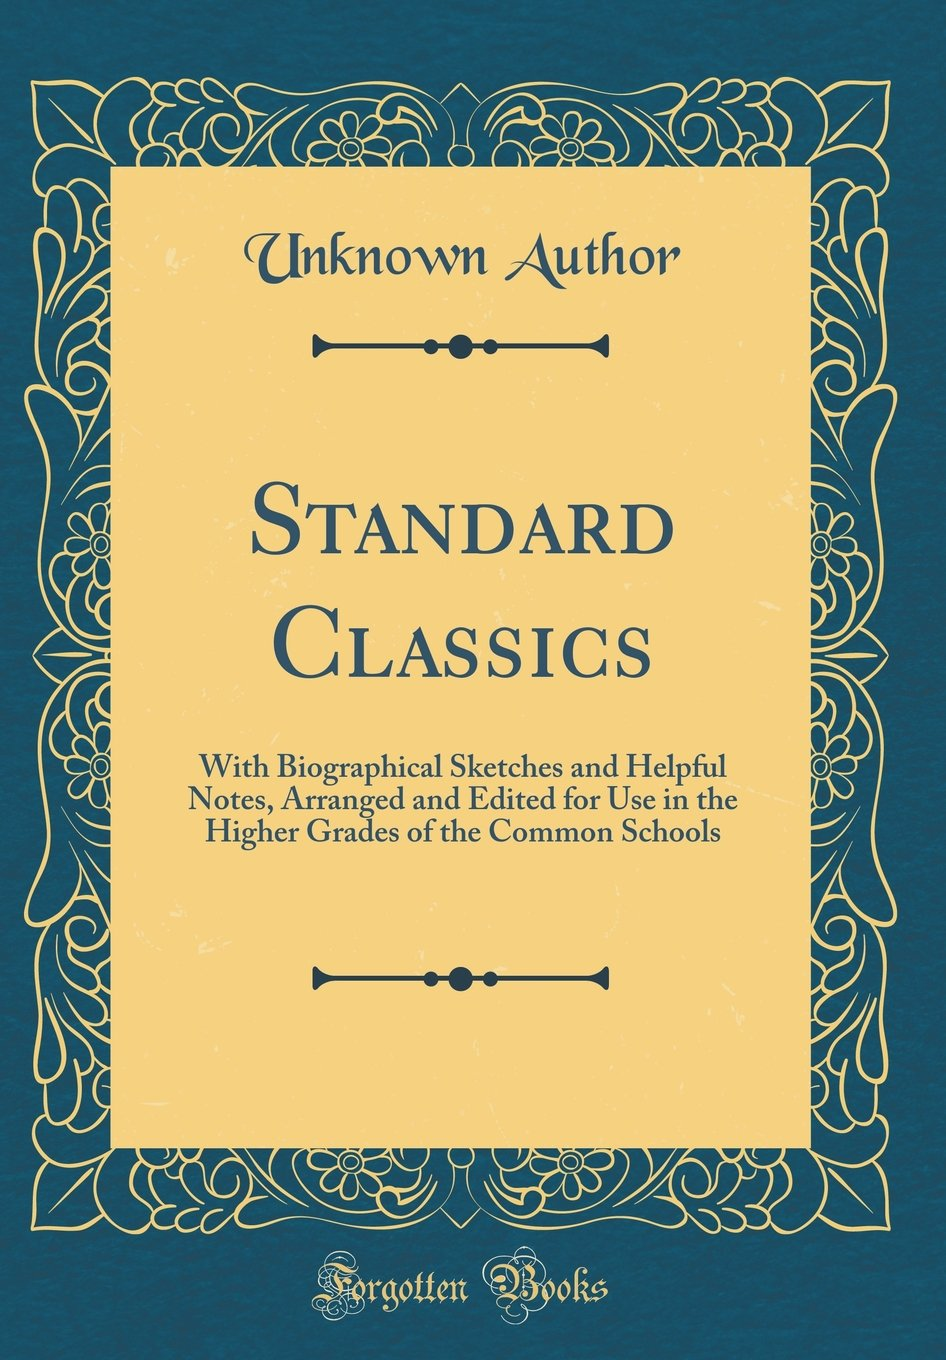 Standard Classics: With Biographical Sketches and Helpful Notes, Arranged and Edited for Use in the Higher Grades of the Common Schools (Classic Reprint) ebook